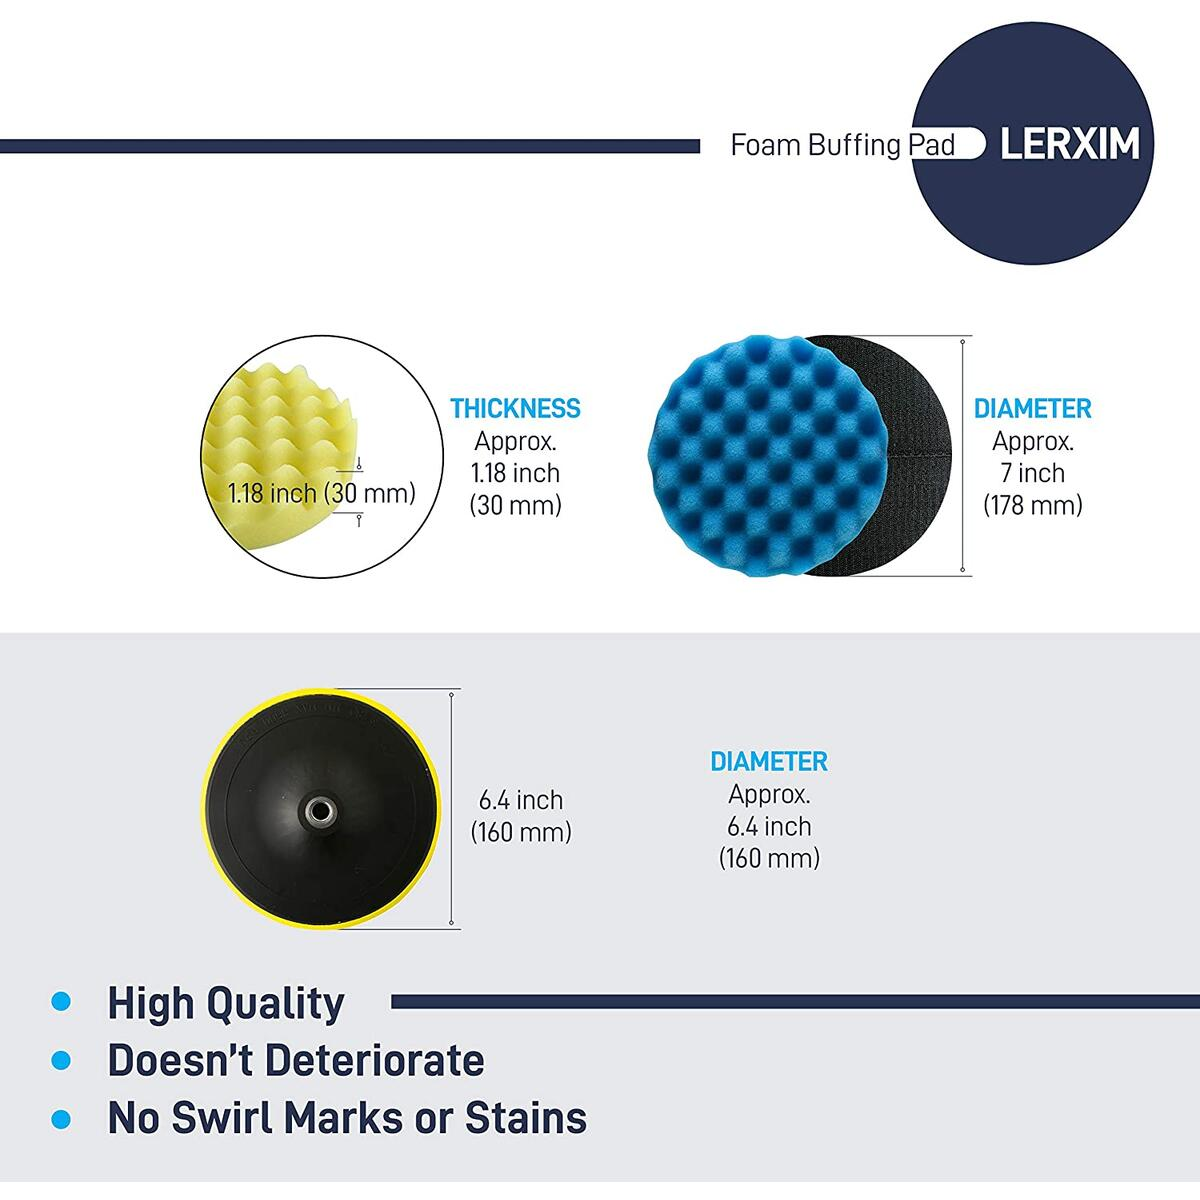 LERXIM Buffing Pads Polishing Pad Kit 7 Inch - with 5 X 7 inch Foam Pads, 1 X Backet Plate with Drill Adapter and 1 X Wool Pad. Car Polishing Pad Kit for car waxing